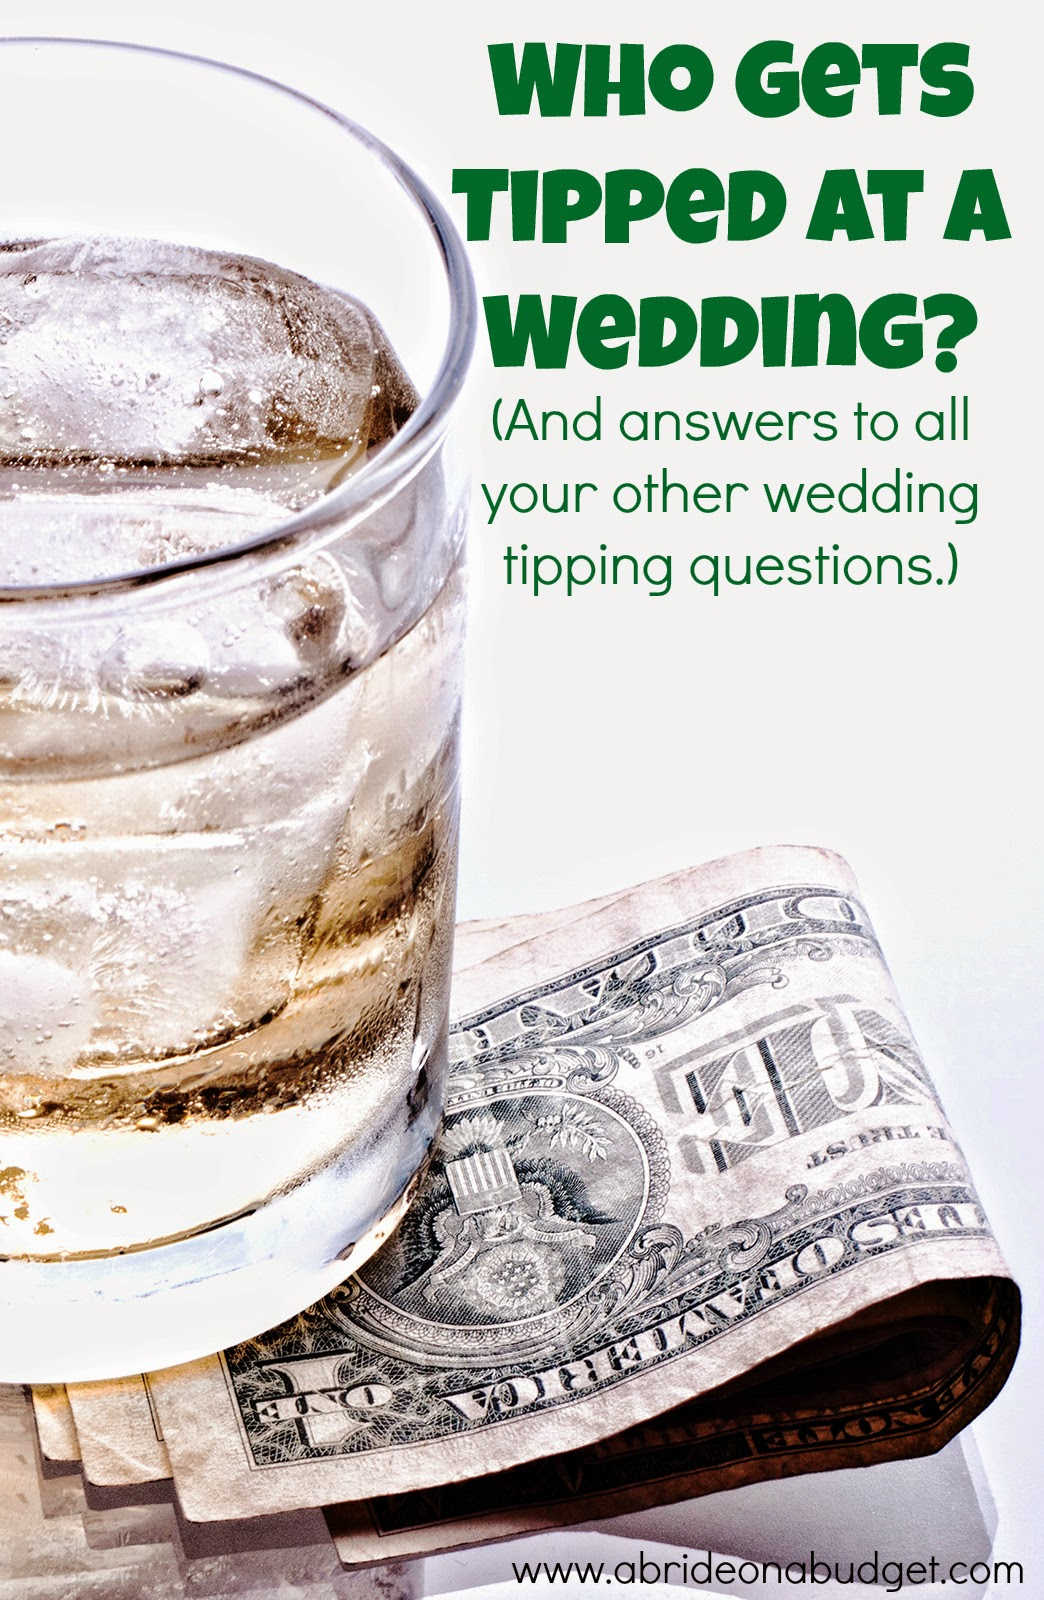 tipping-at-weddings